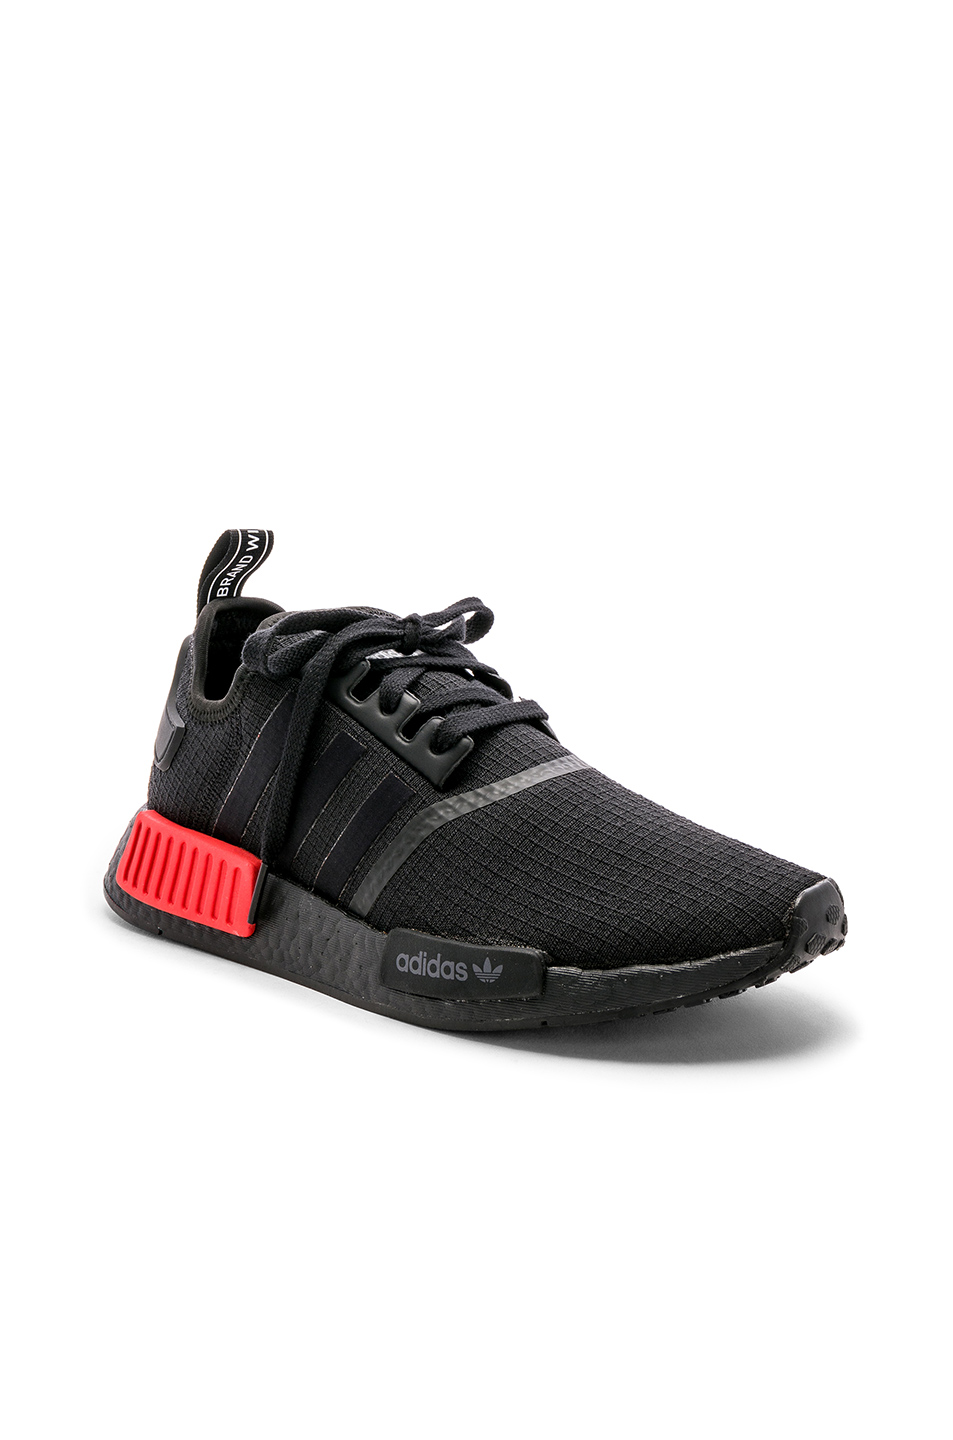 6878a93ed Adidas Nmd R1 Womens Indonesia - Adidas Best Photos 2019